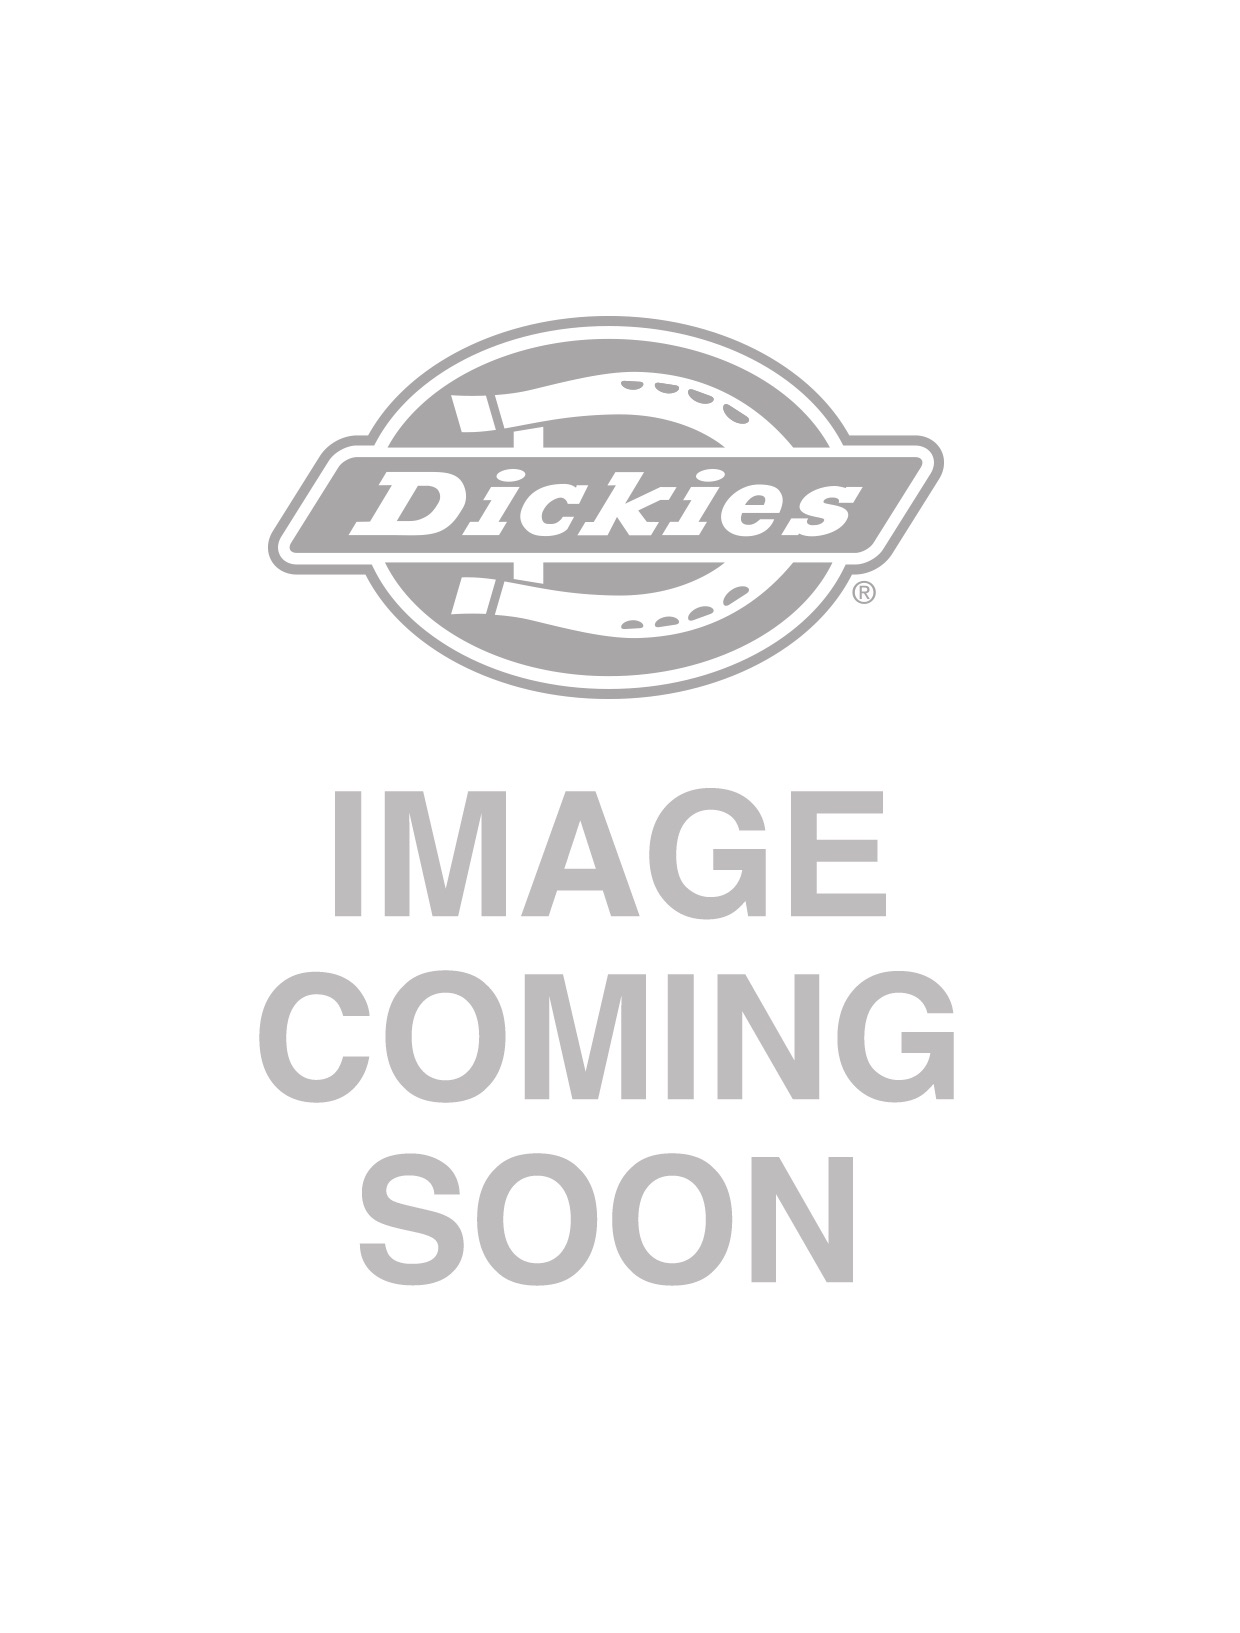 630caf25f47 Dickies Womens New Paltz T-Shirt